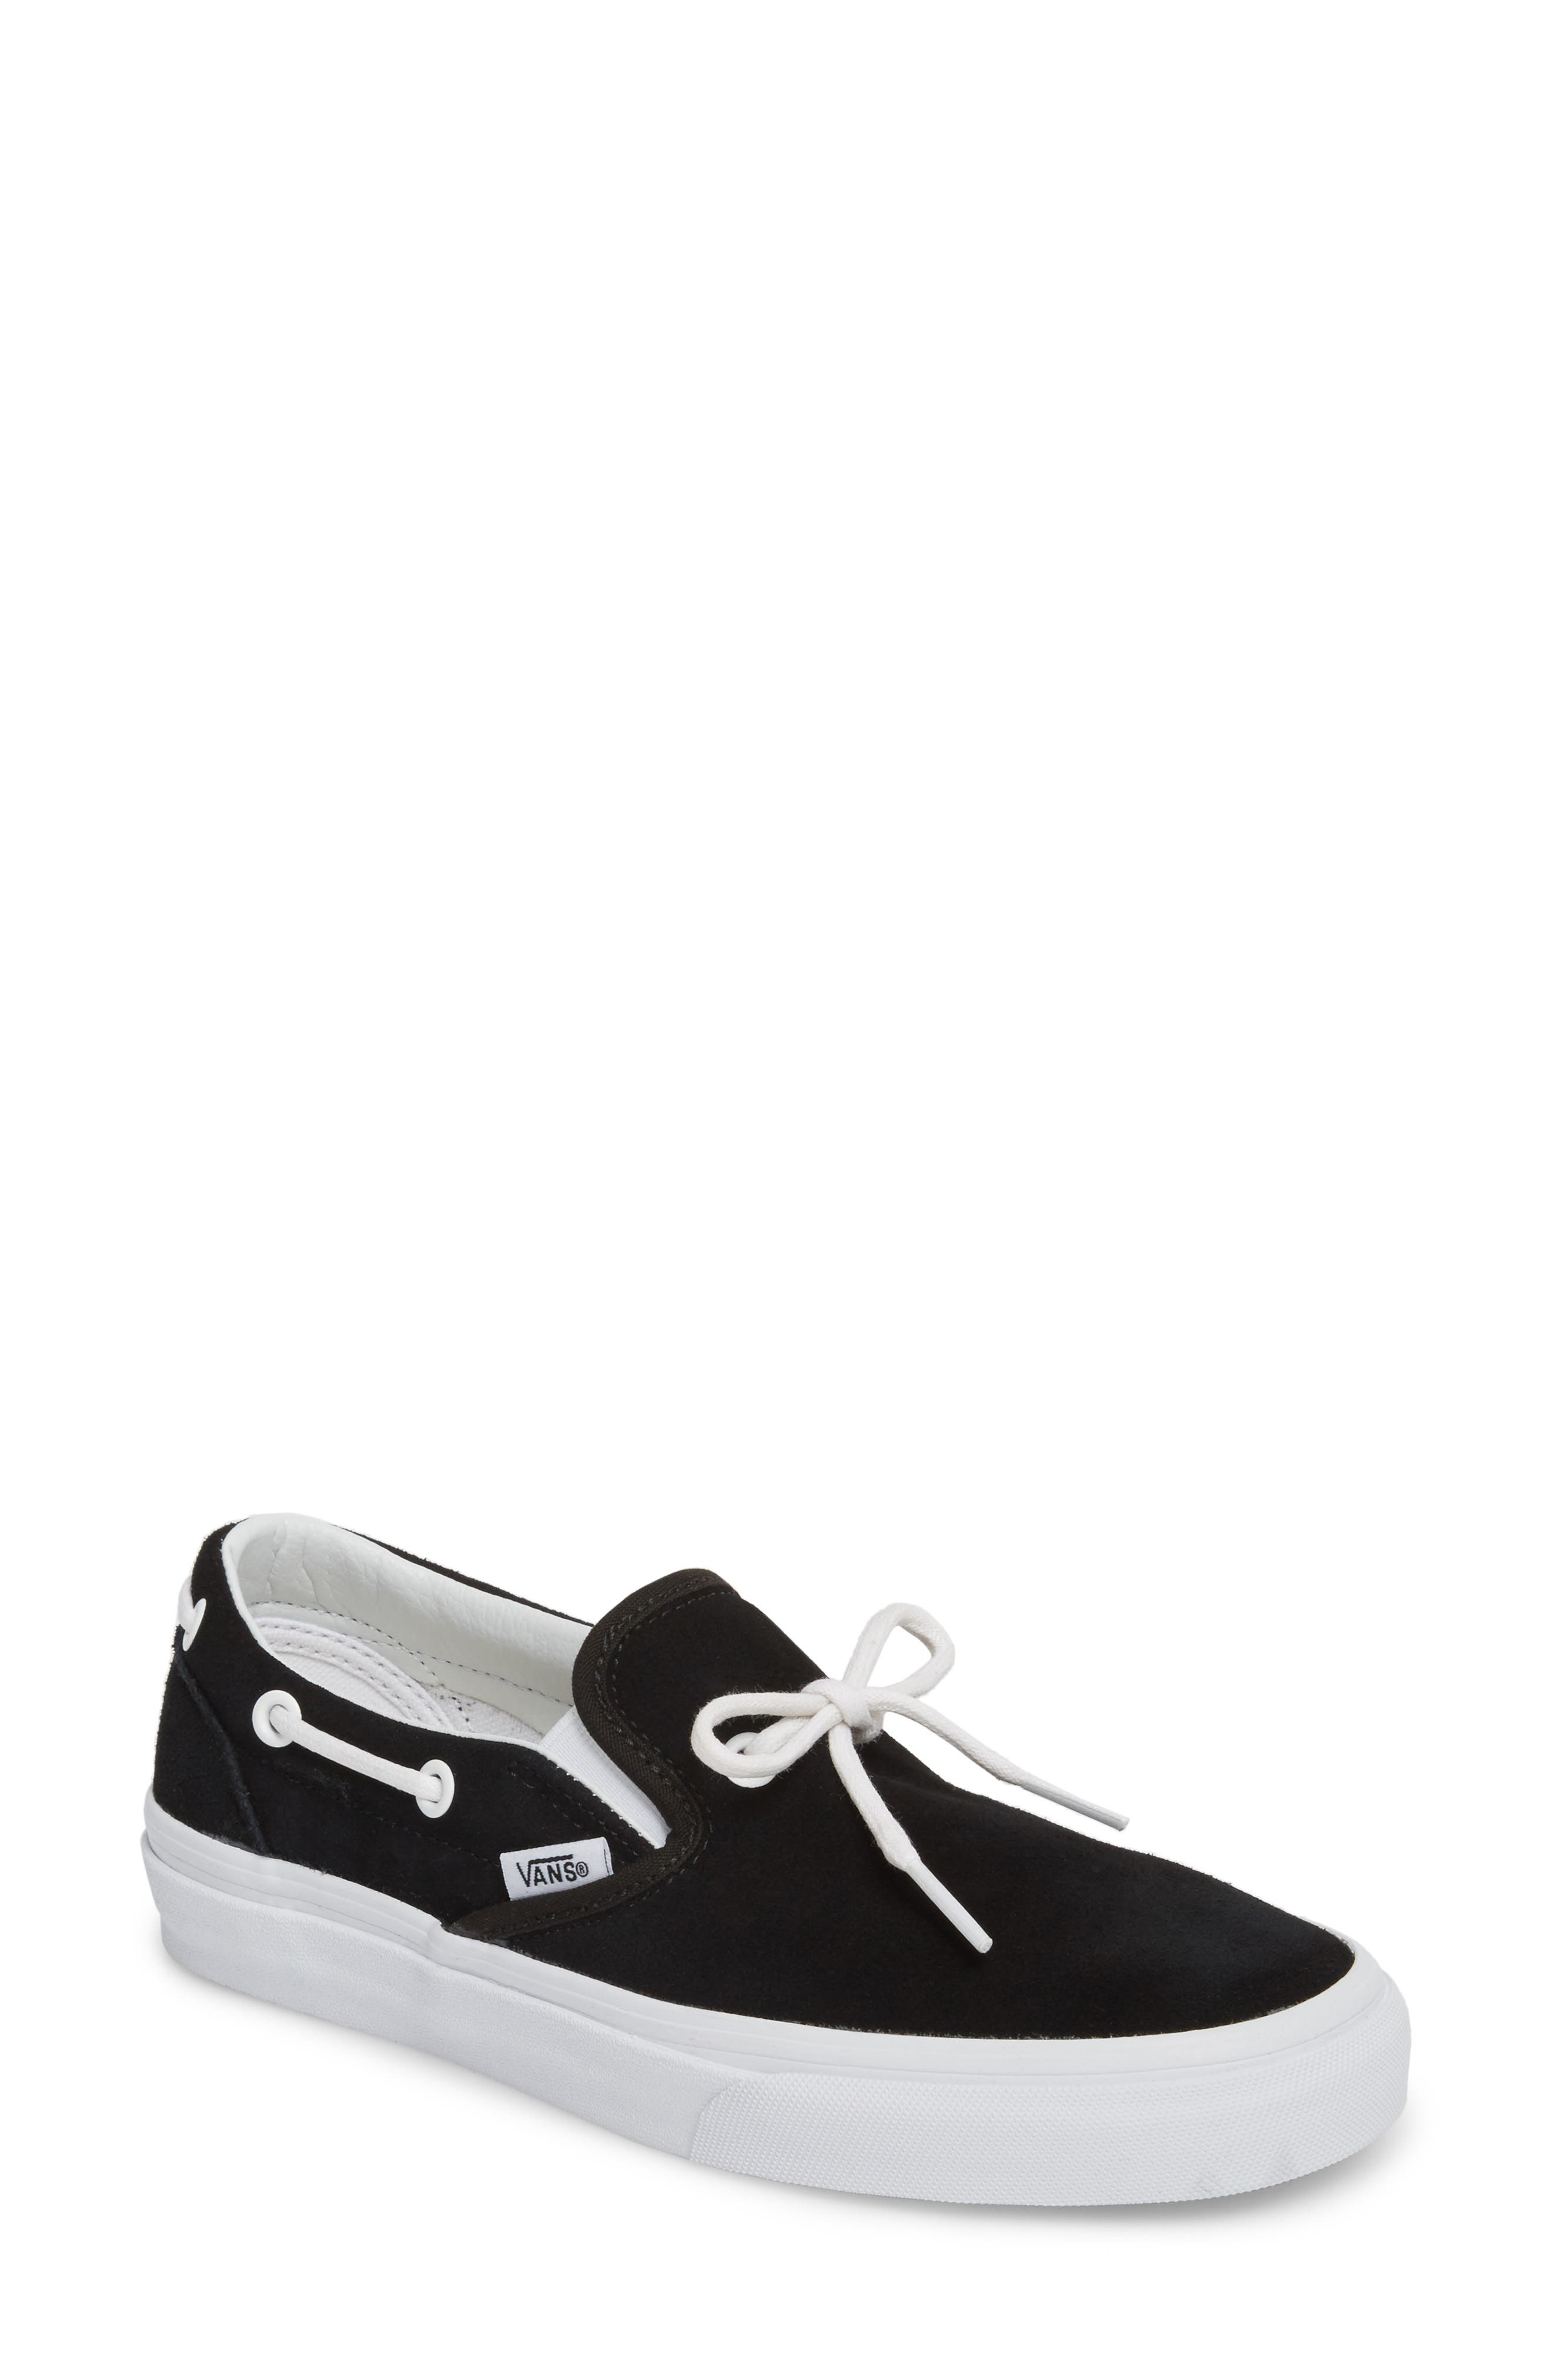 UA Lacey 72 Slip-On Boat Sneaker,                         Main,                         color, Black Leather